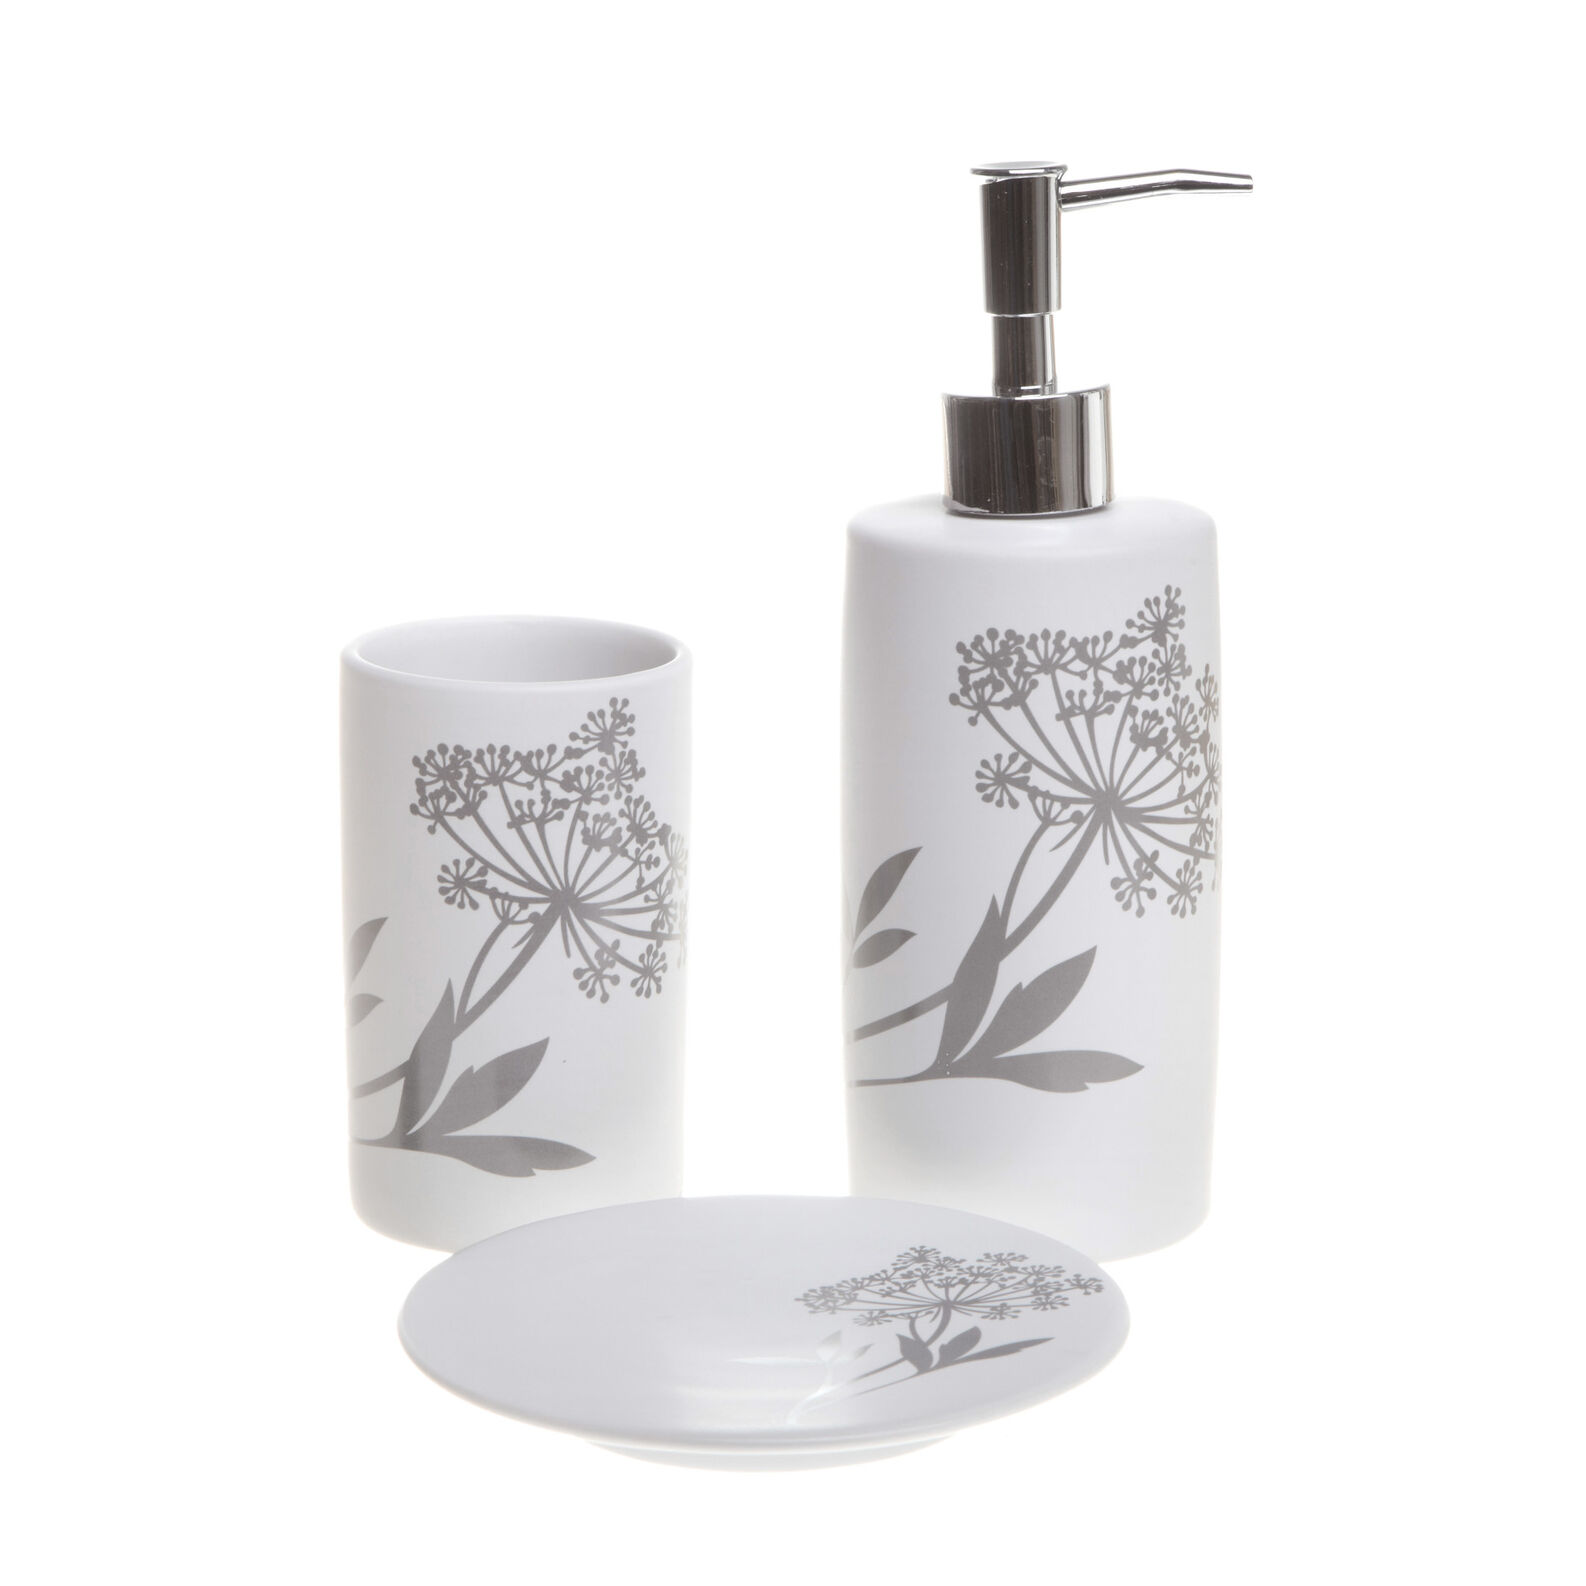 Floral ceramic bathroom set